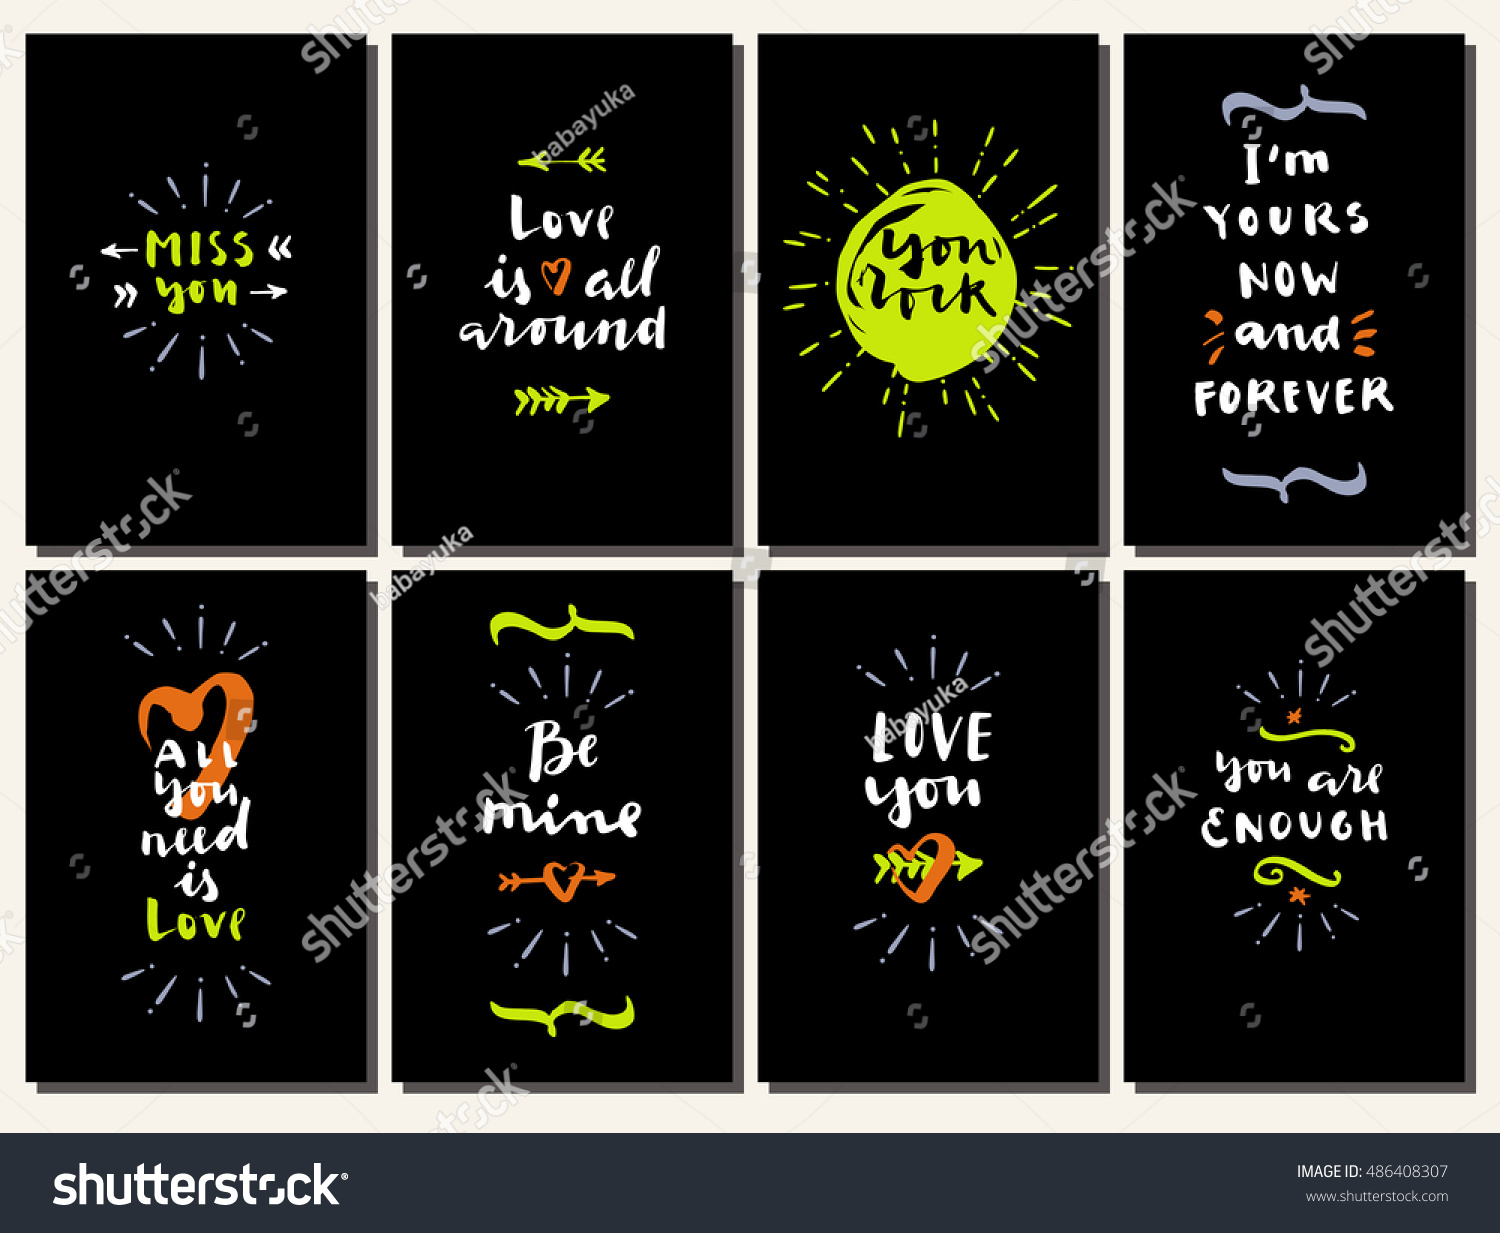 Attractive Vector Hand Drawn Calligraphic Valentineu0027s Day Cards With Hearts And  Arrows. Love Is All Around